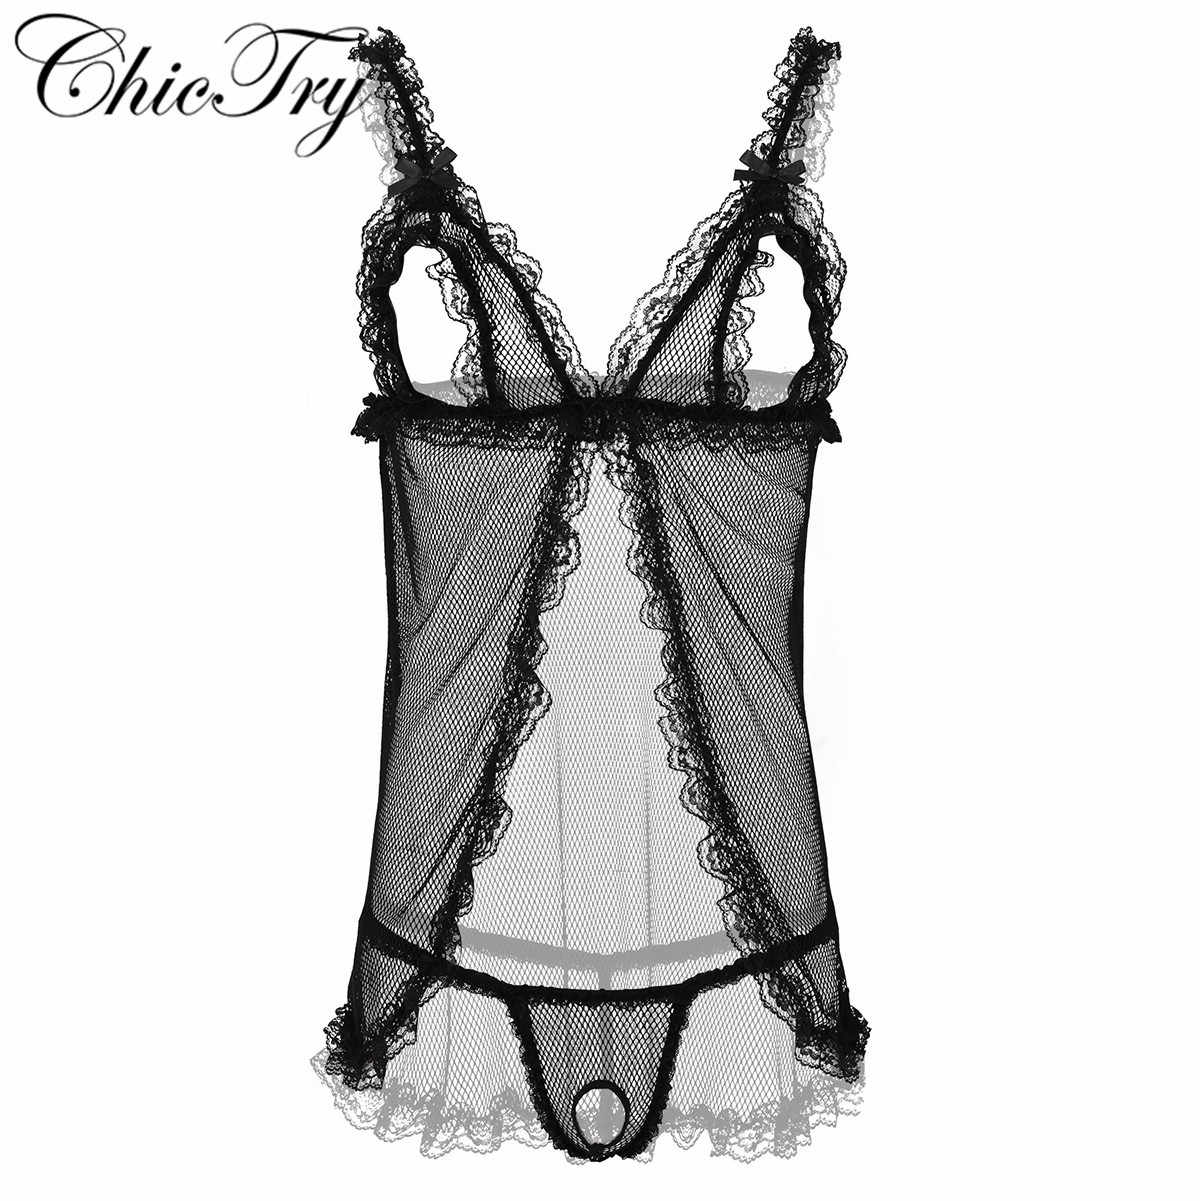 CHICTRY Womens Lingerie Lace Floral Sheer High Cut Leotard Bodysuit Nightwear